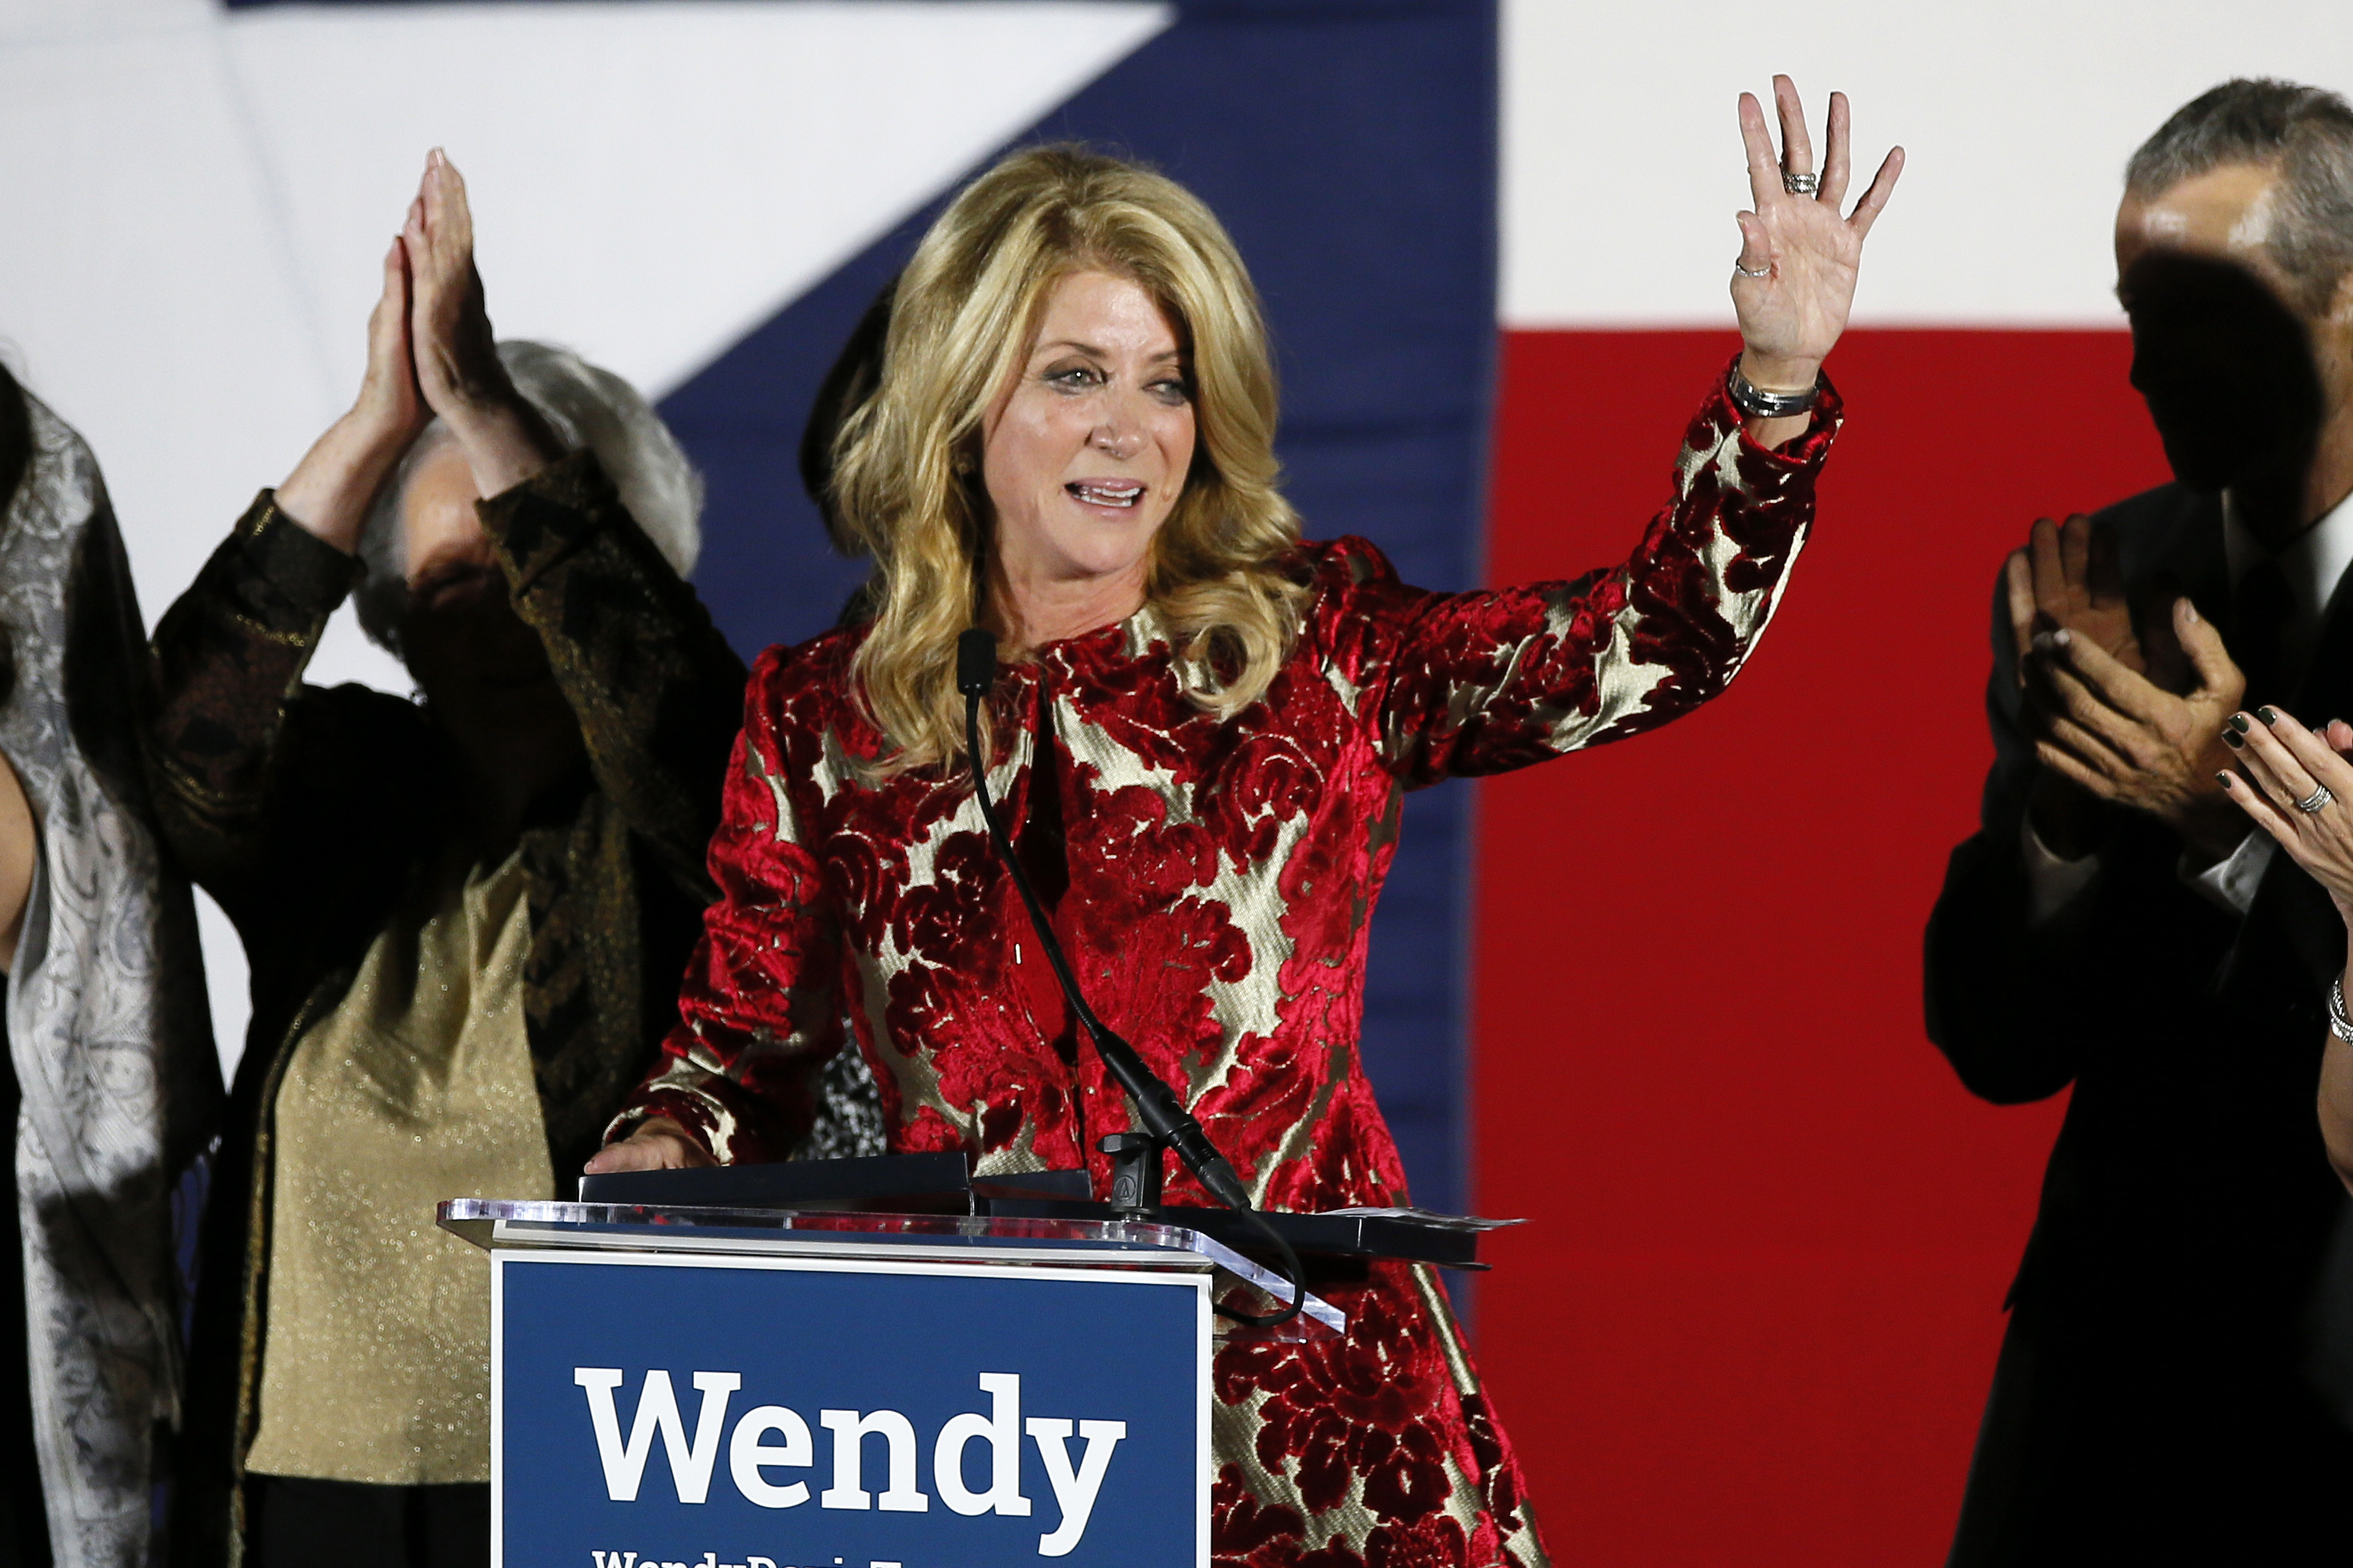 Best 22 Silencer 2020 Democrat Wendy Davis of Texas running for Congress in 2020